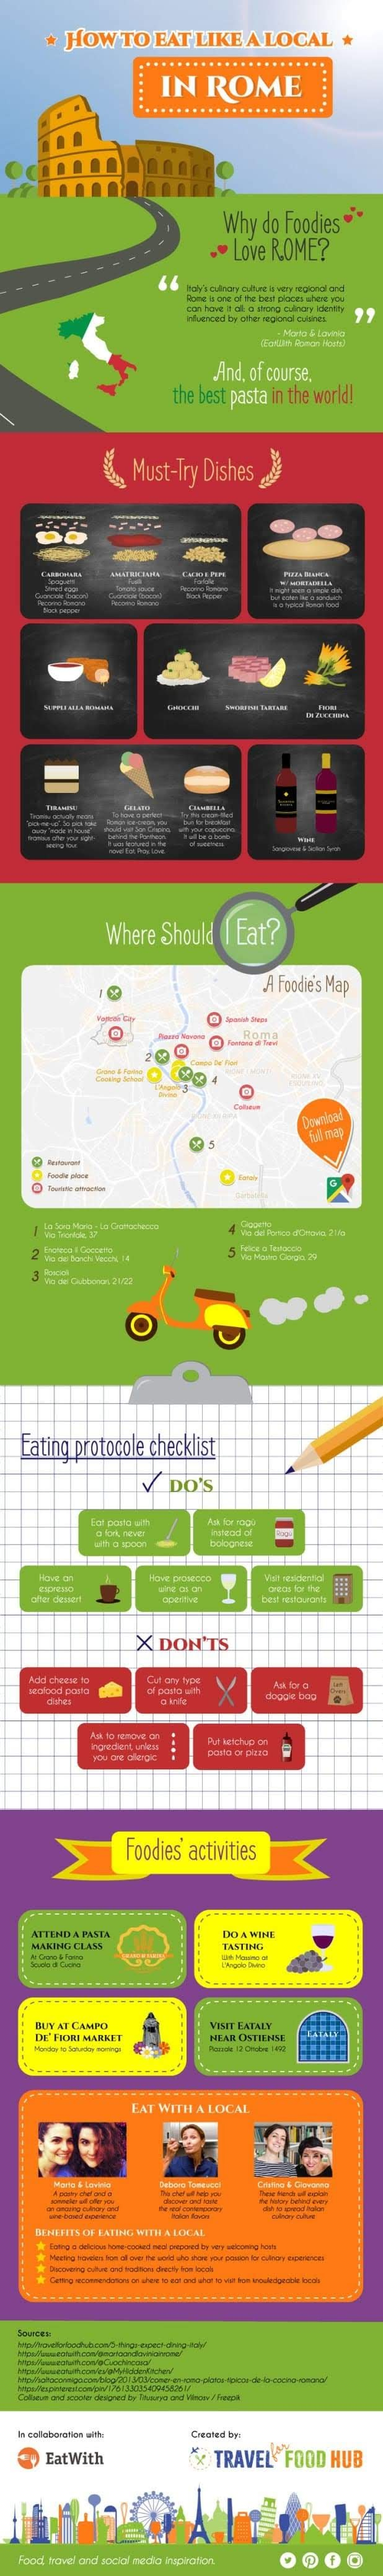 How To Eat Like A Local In Rome #infographic